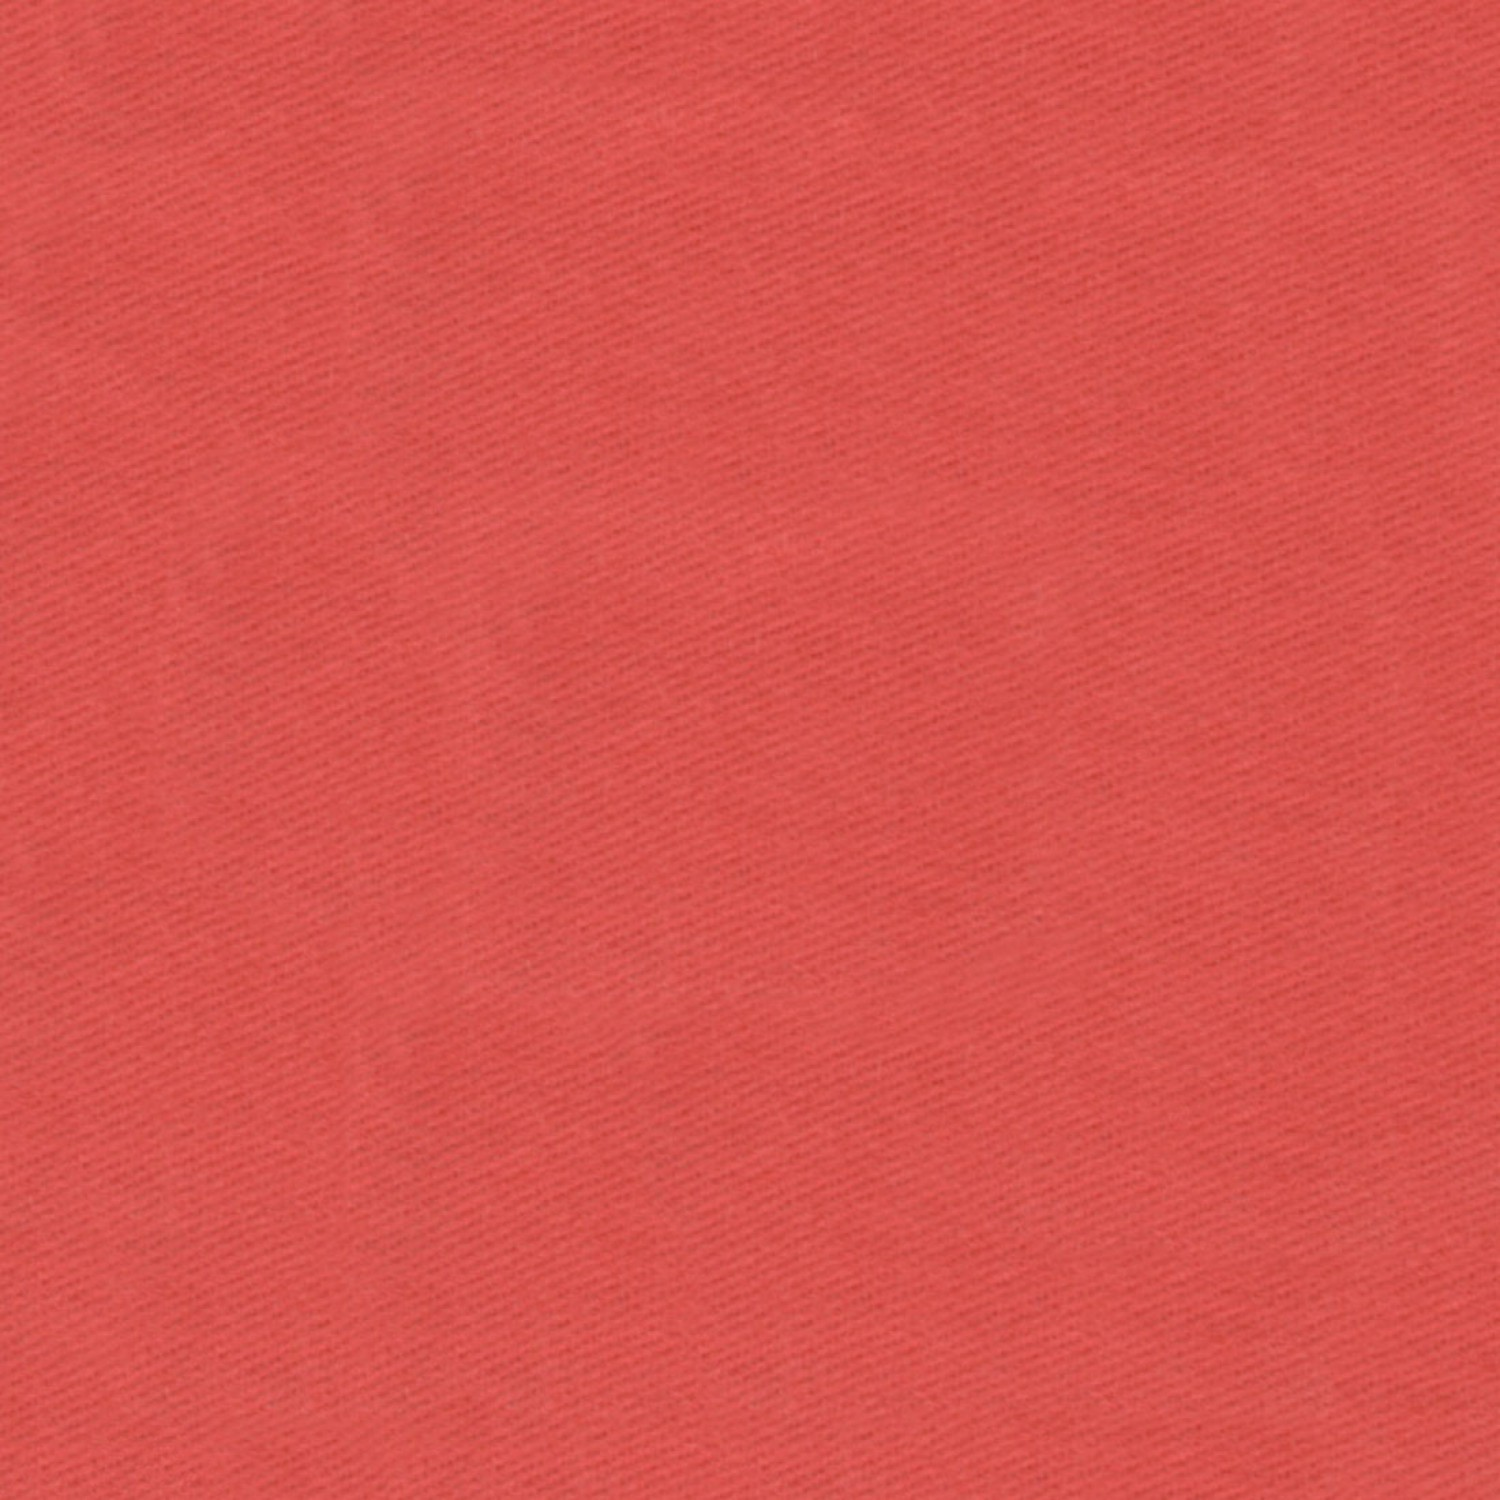 "Milestone Twill Cayenne Fabric 7oz - 60"" Wide x Per Yard"